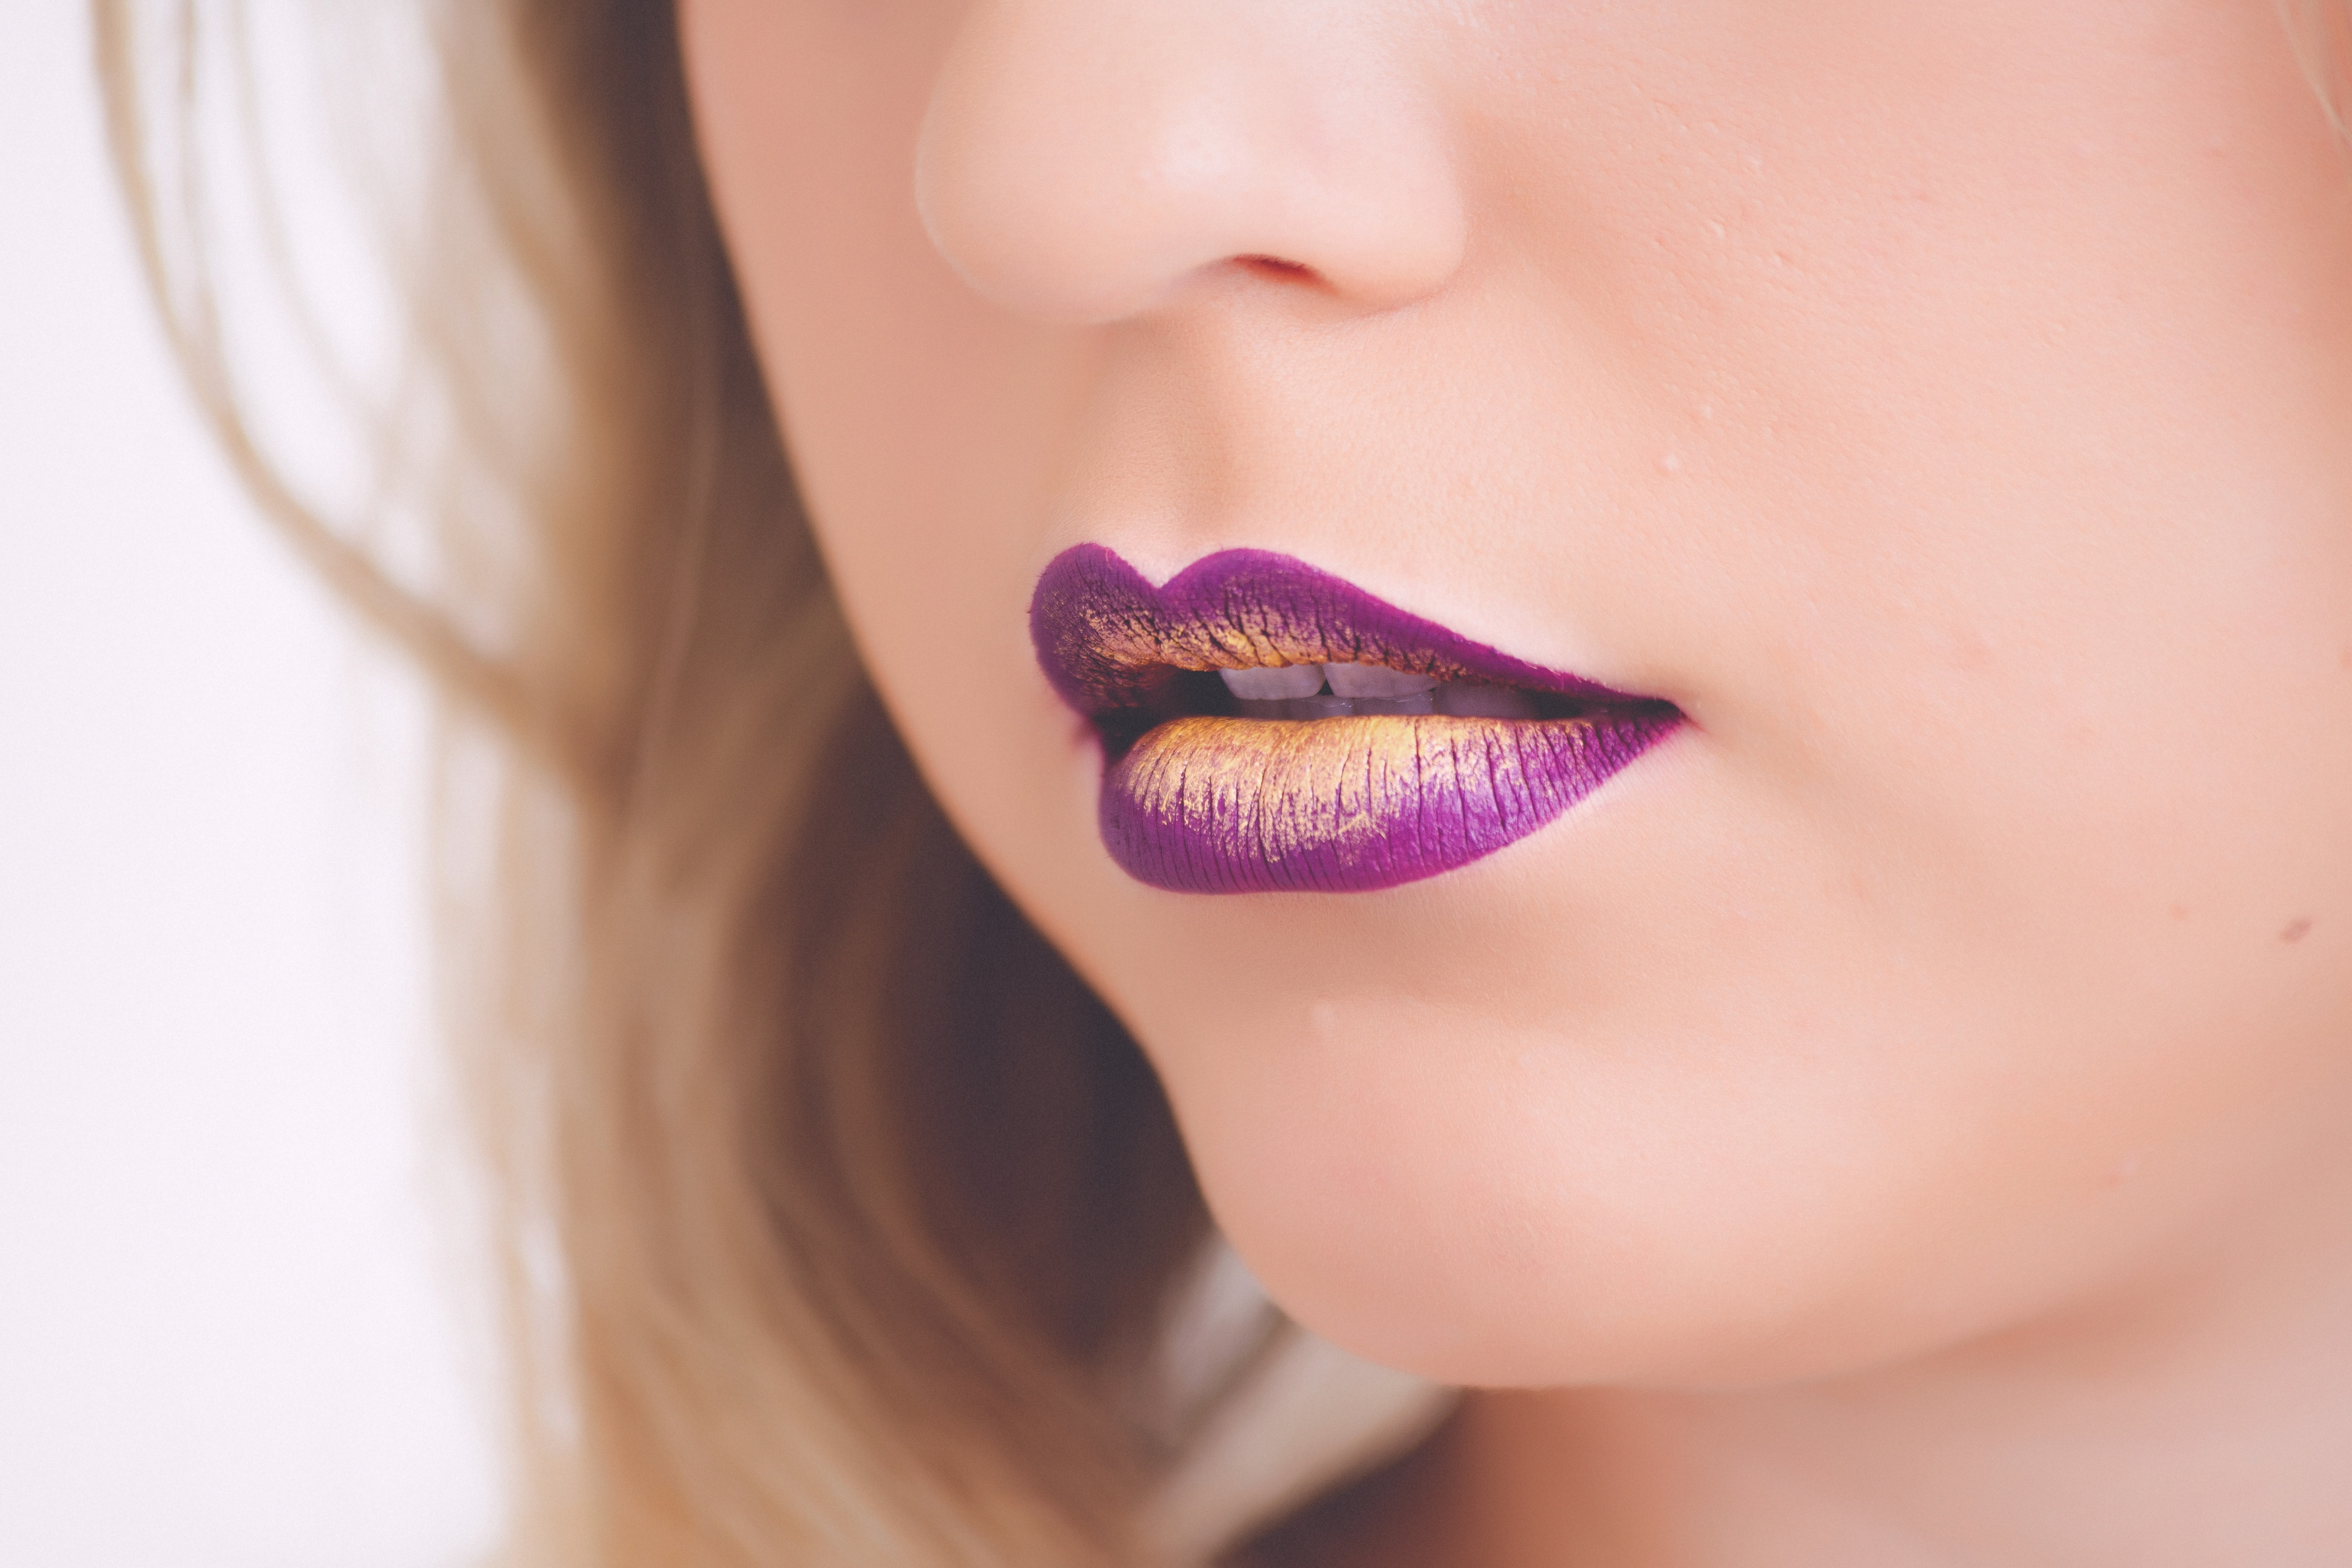 Woman Wearing Purple and Beige Lipstick, Pose, Pretty, Photoshoot, Person, HQ Photo